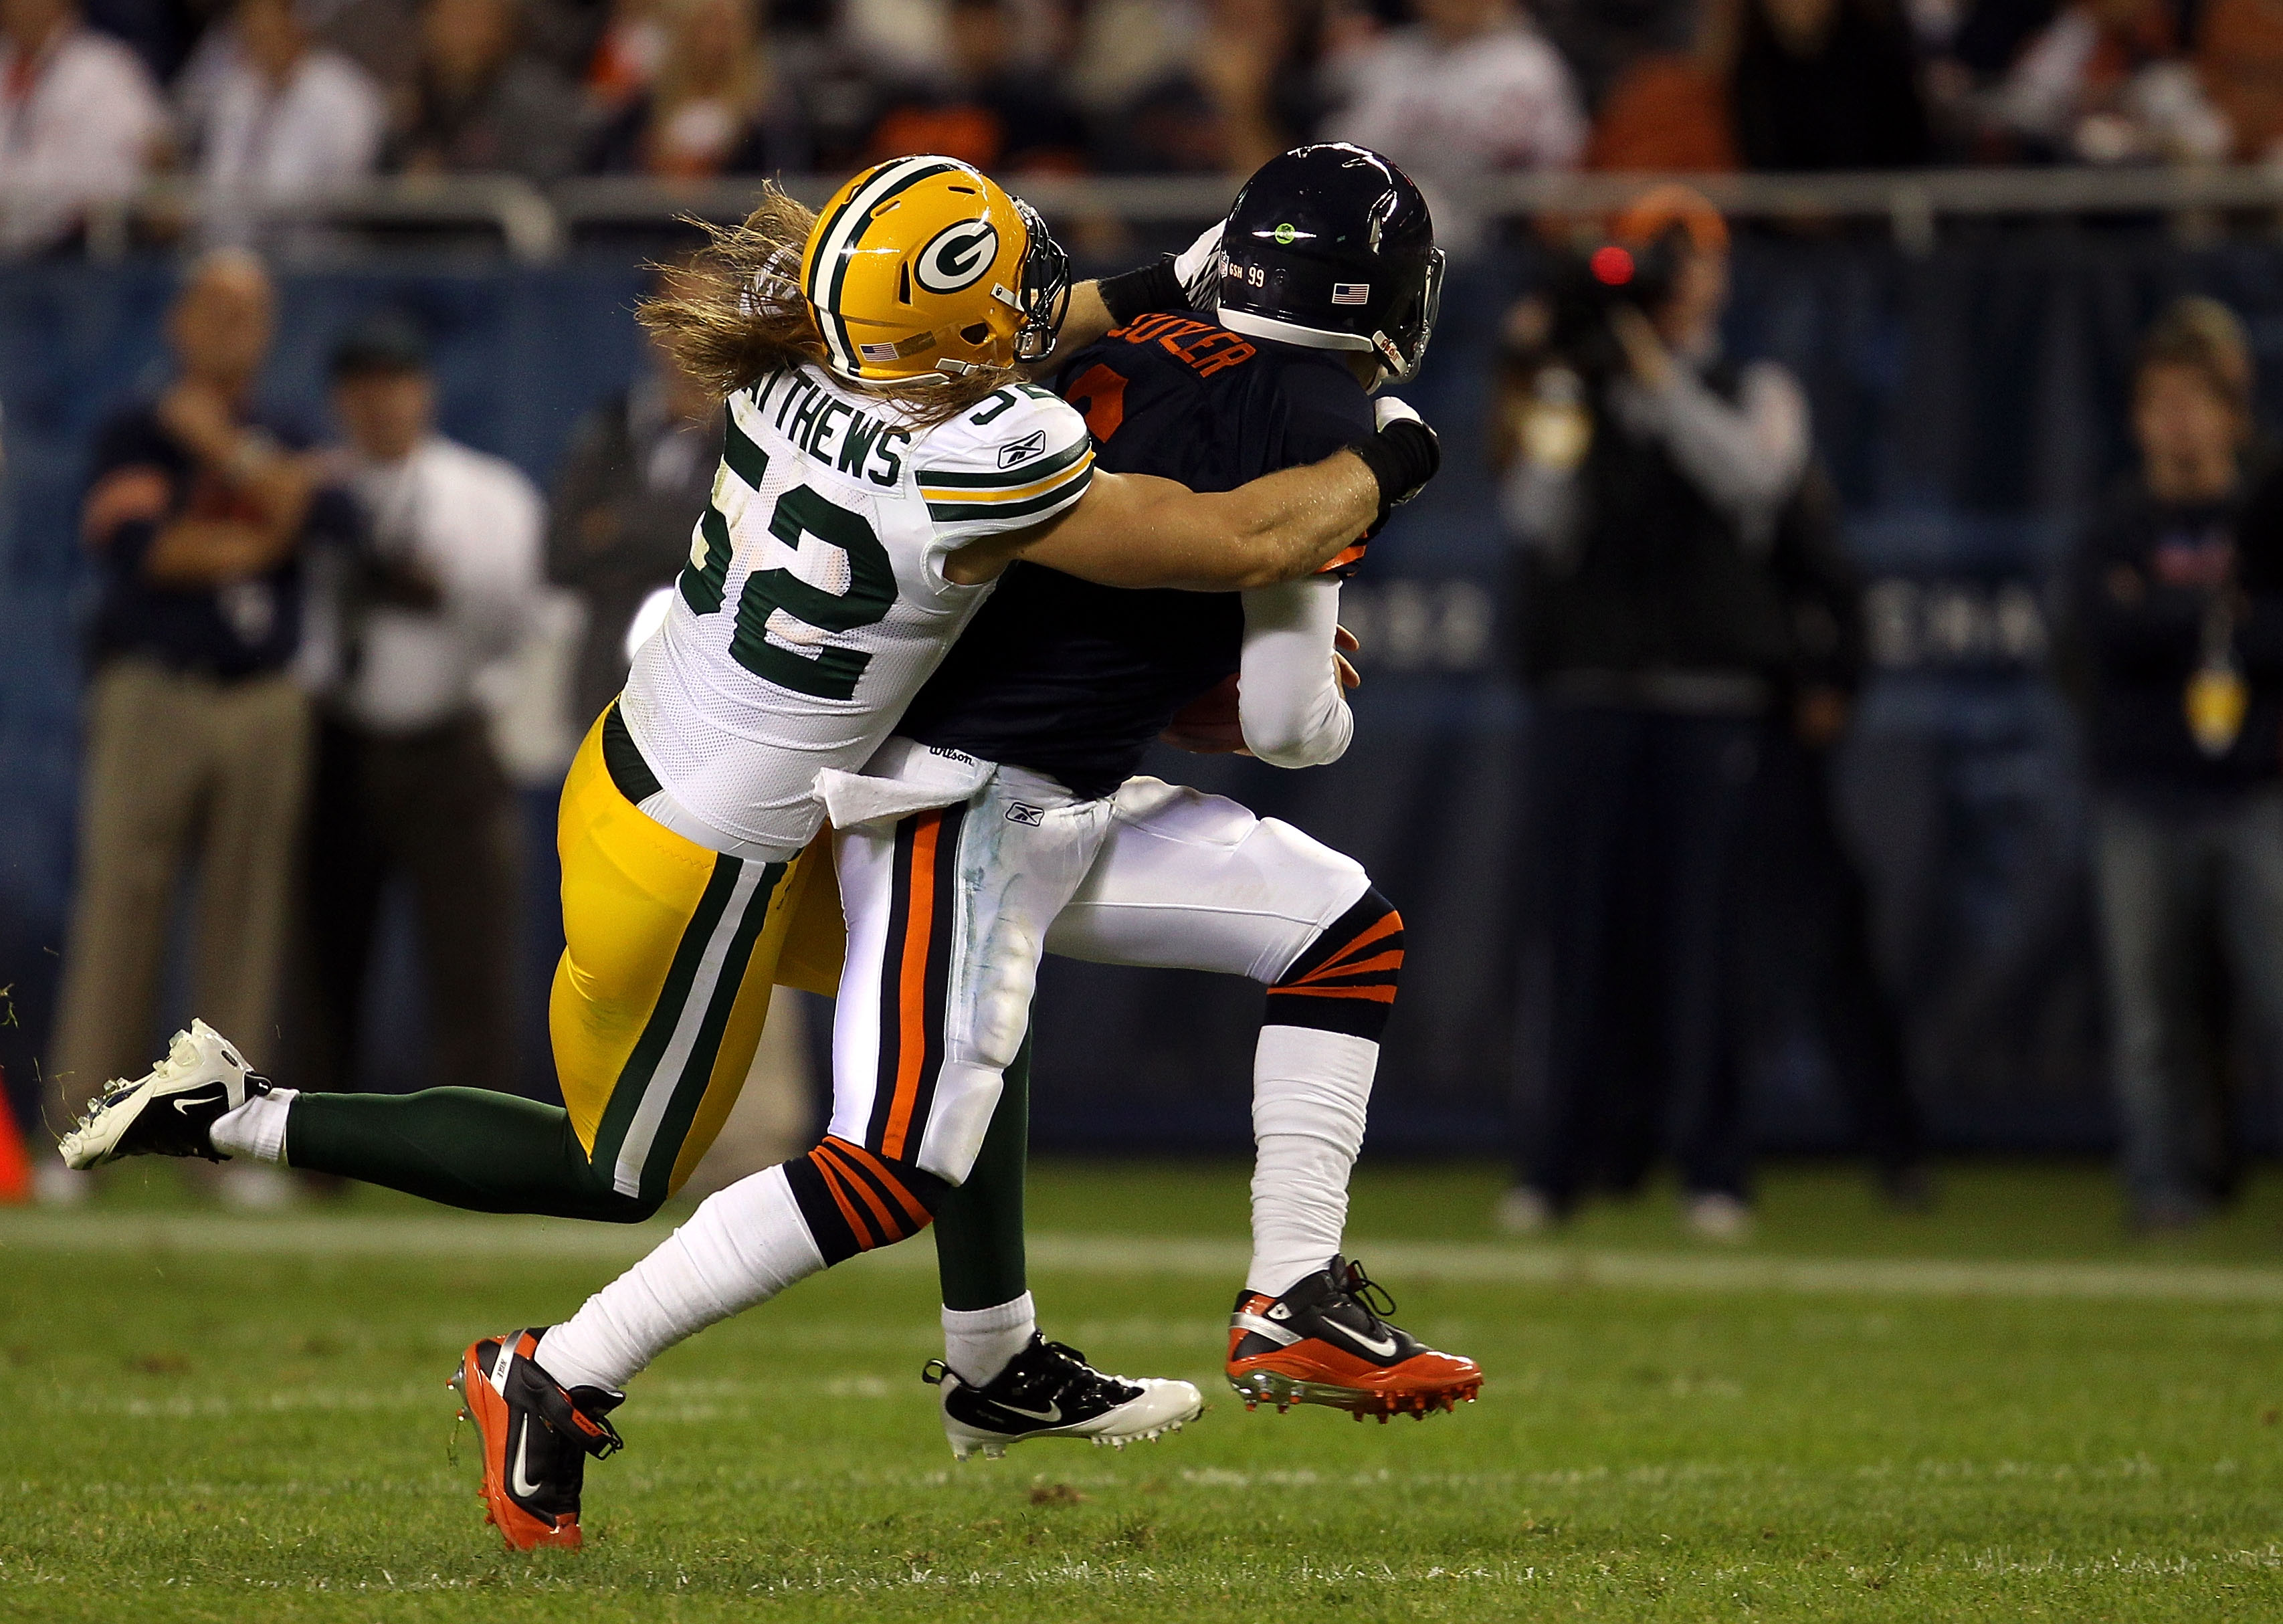 CHICAGO - SEPTEMBER 27:  Clay Matthews #52 of the Green Bay Packers is called for a facemask as he pulls down Jay Cutler #6 of the Chicago Bears in the first quarter at Soldier Field on September 27, 2010 in Chicago, Illinois. The Bears won 20-17. (Photo